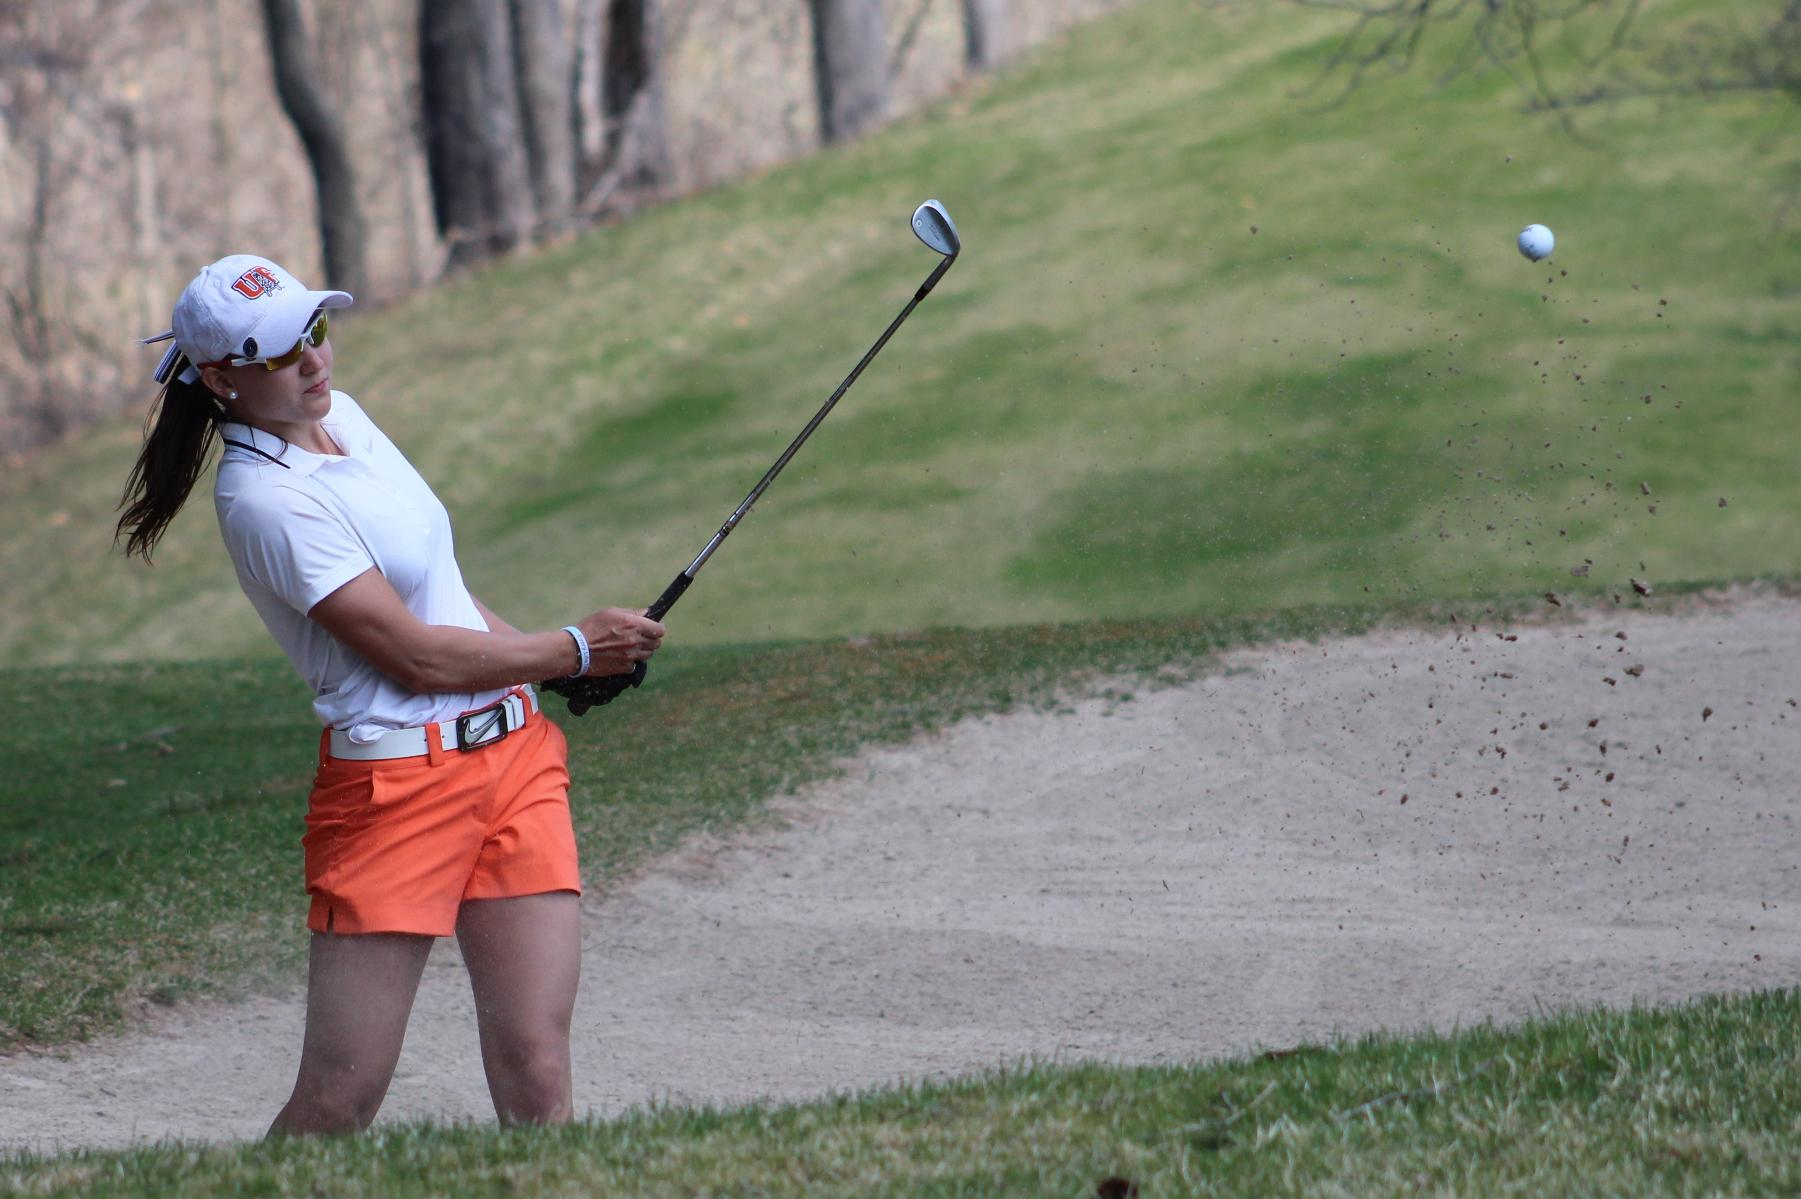 Findlay in First Place After One Round in Midland